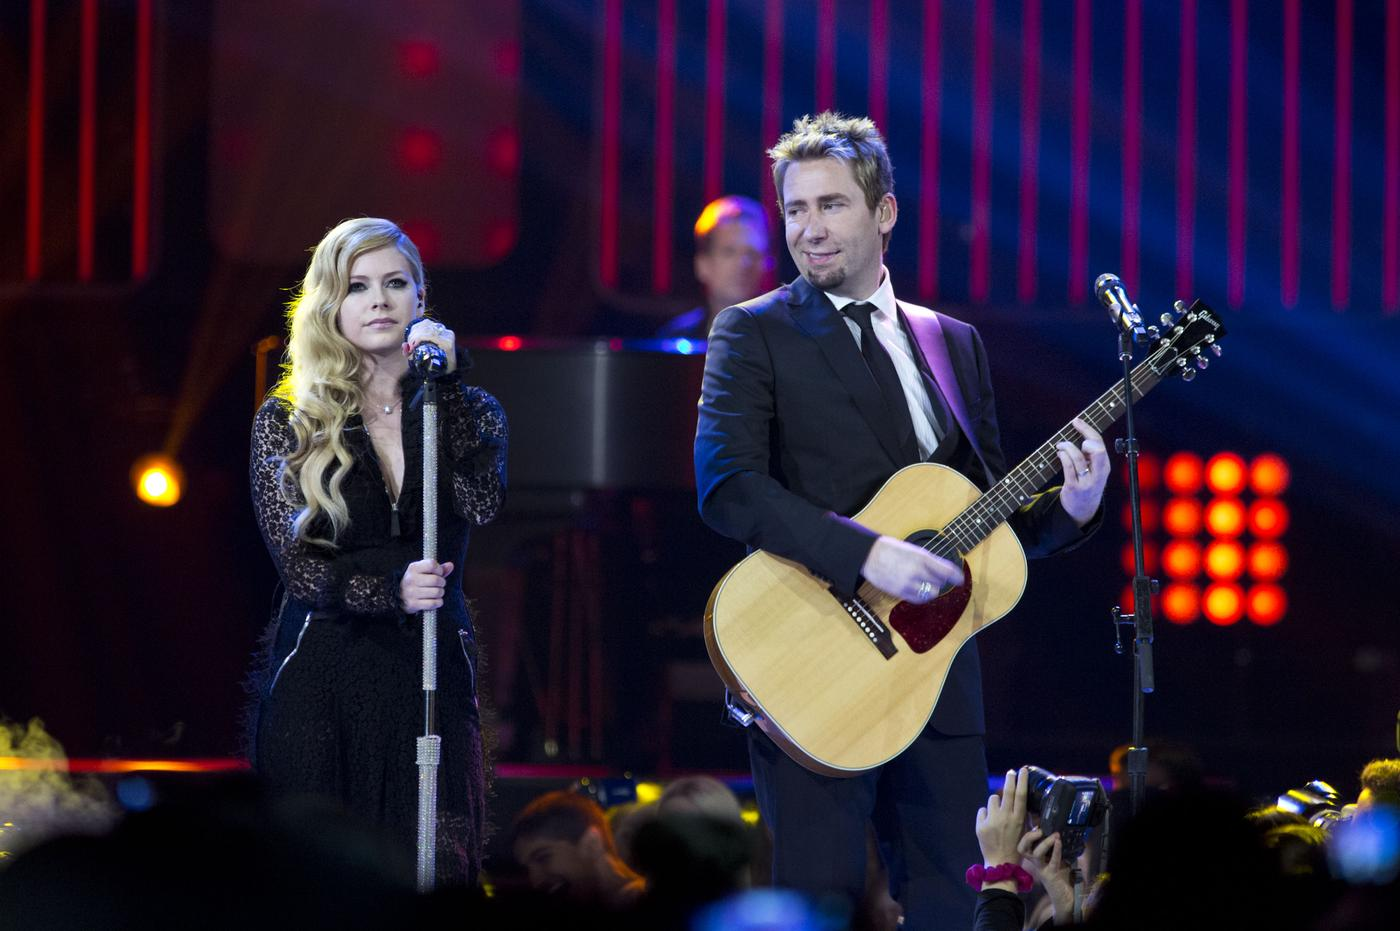 Divorcees Avril Lavigne and Chad Kroeger are working on new music together